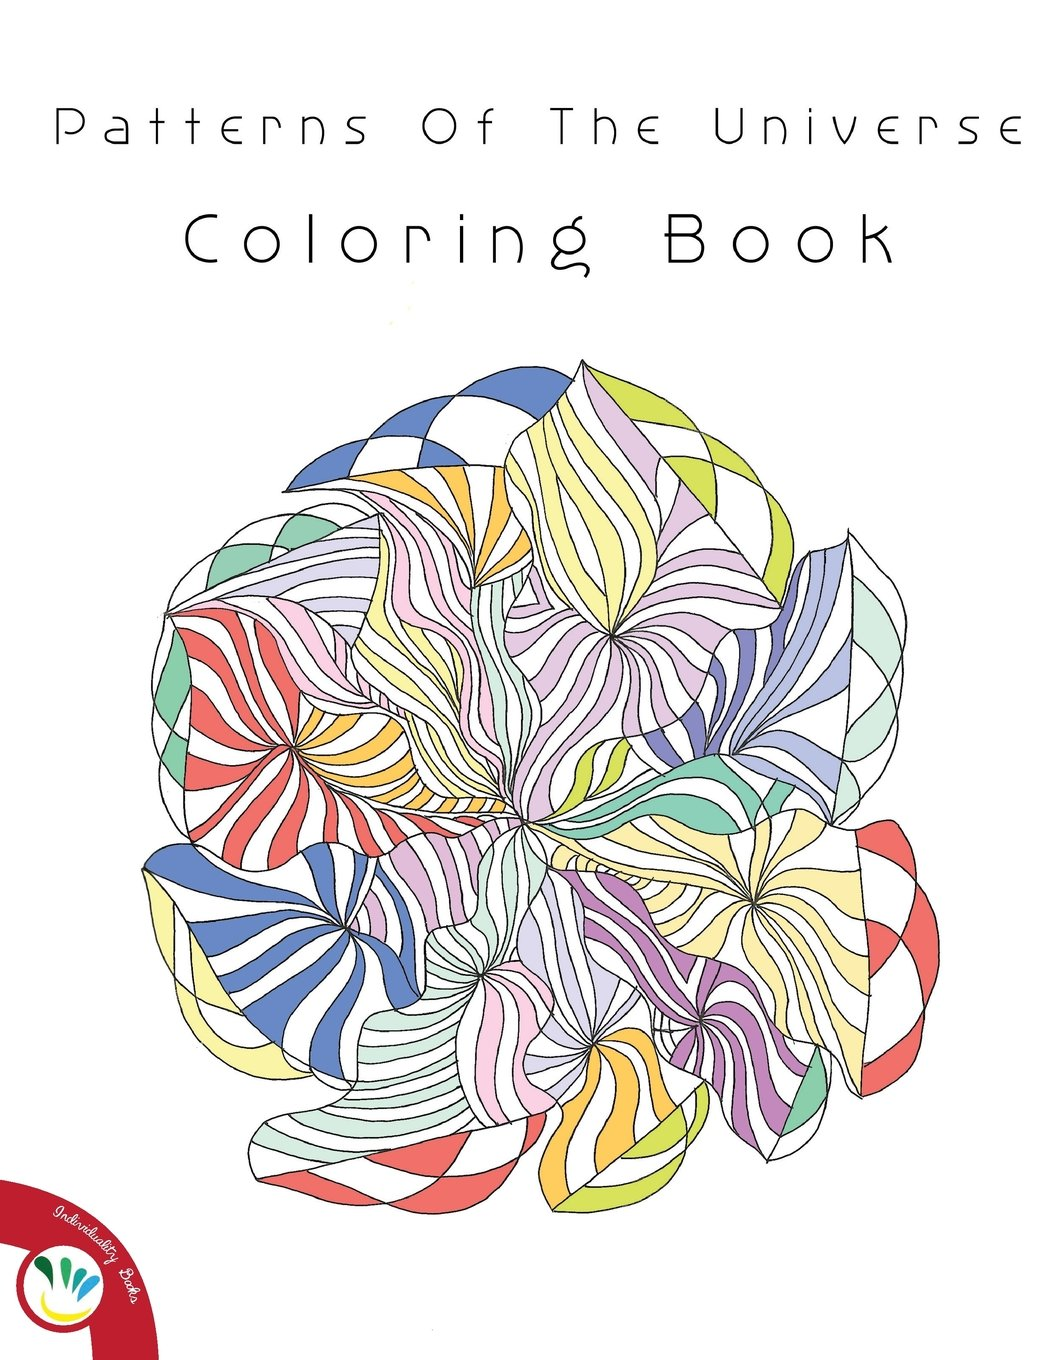 Patterns Of The Universe Coloring Book pdf